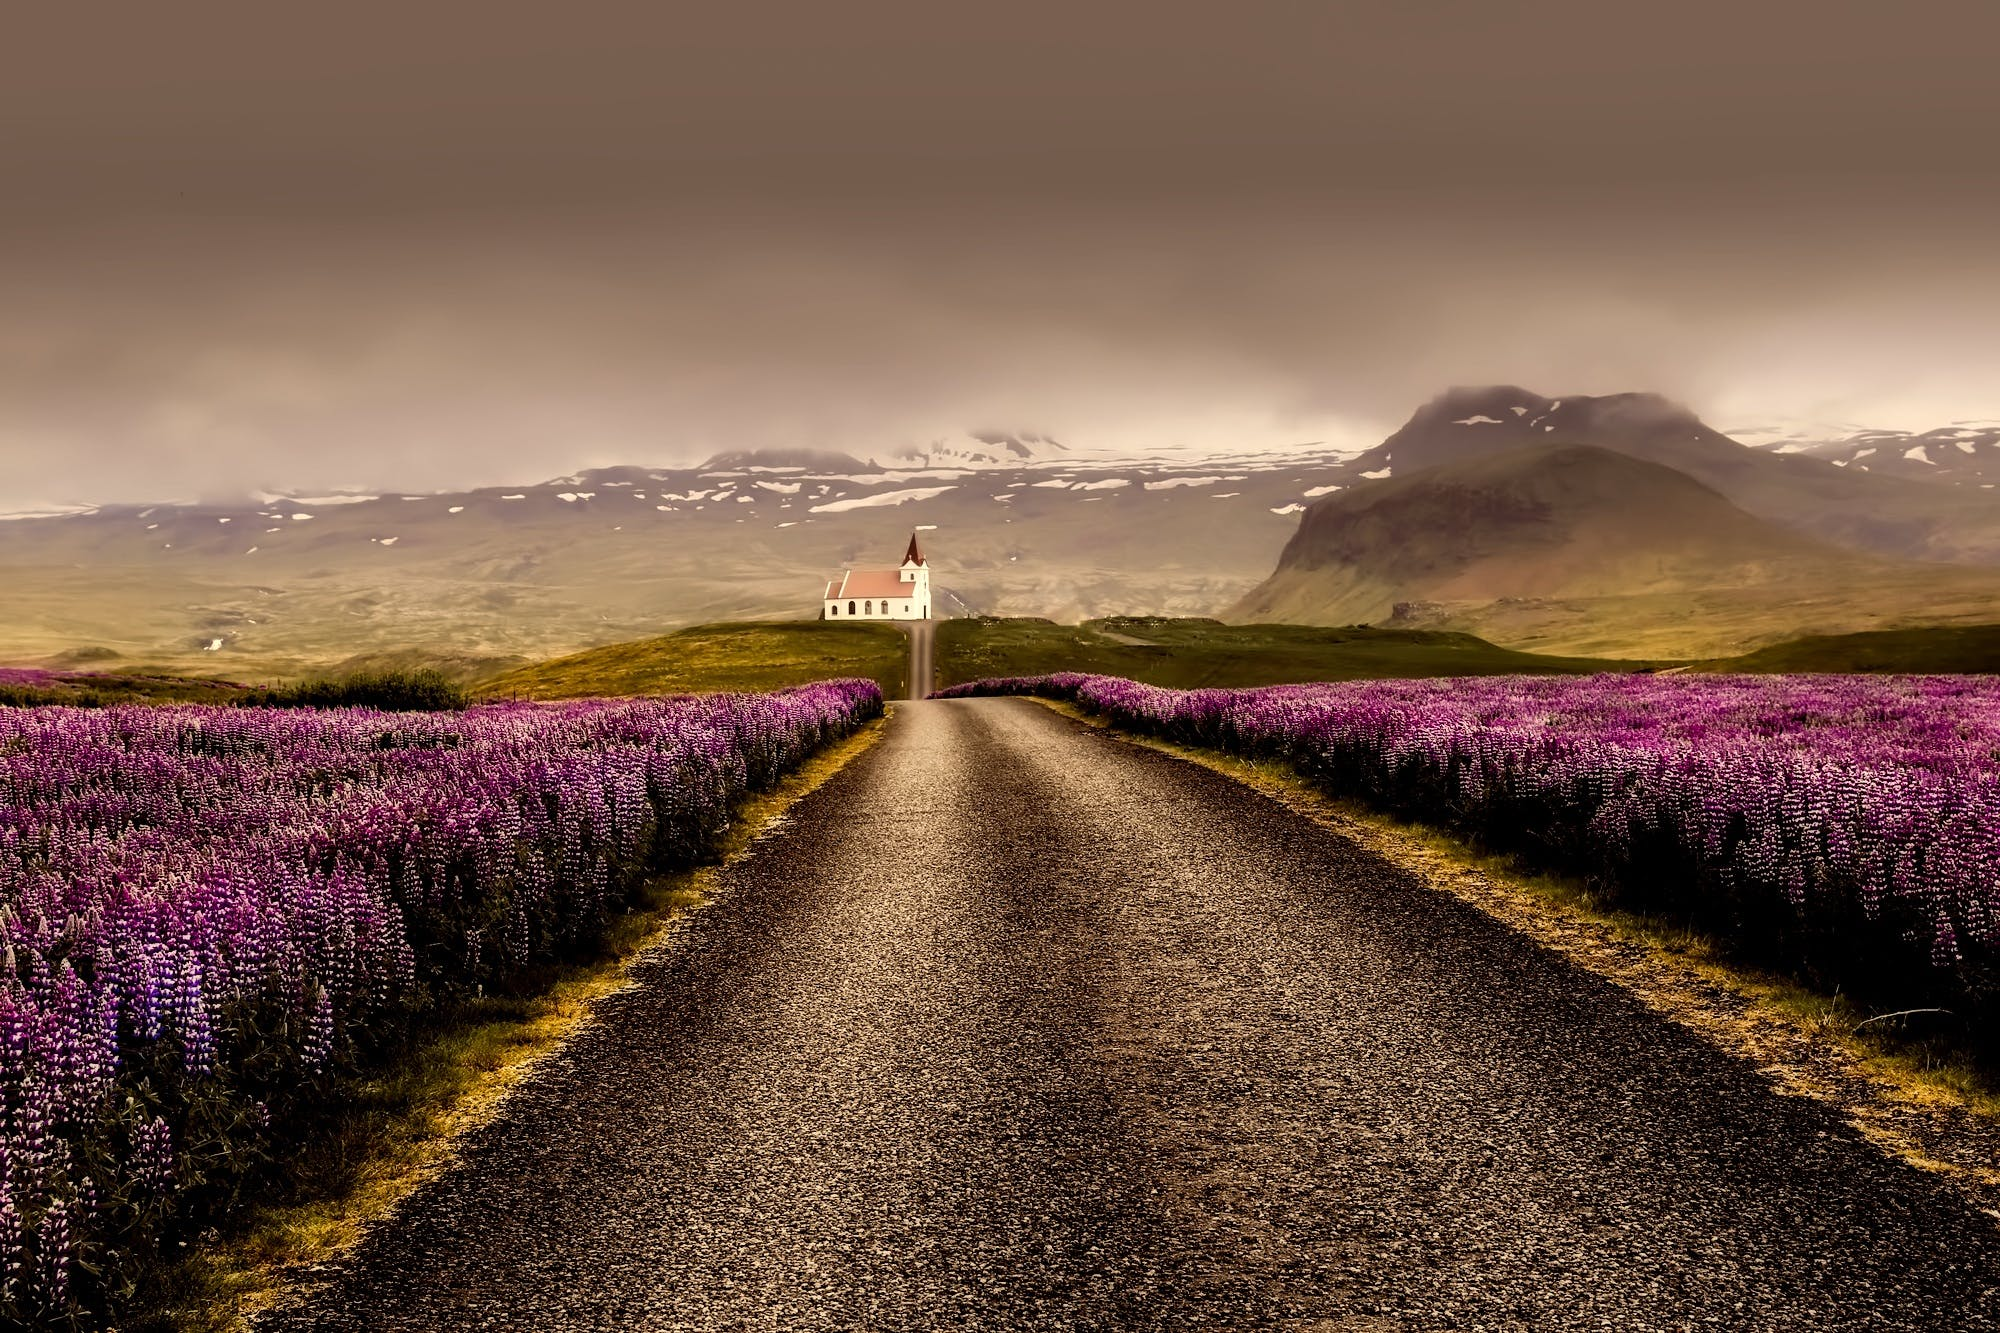 Gray Road Surrounded With Purple Flower Field